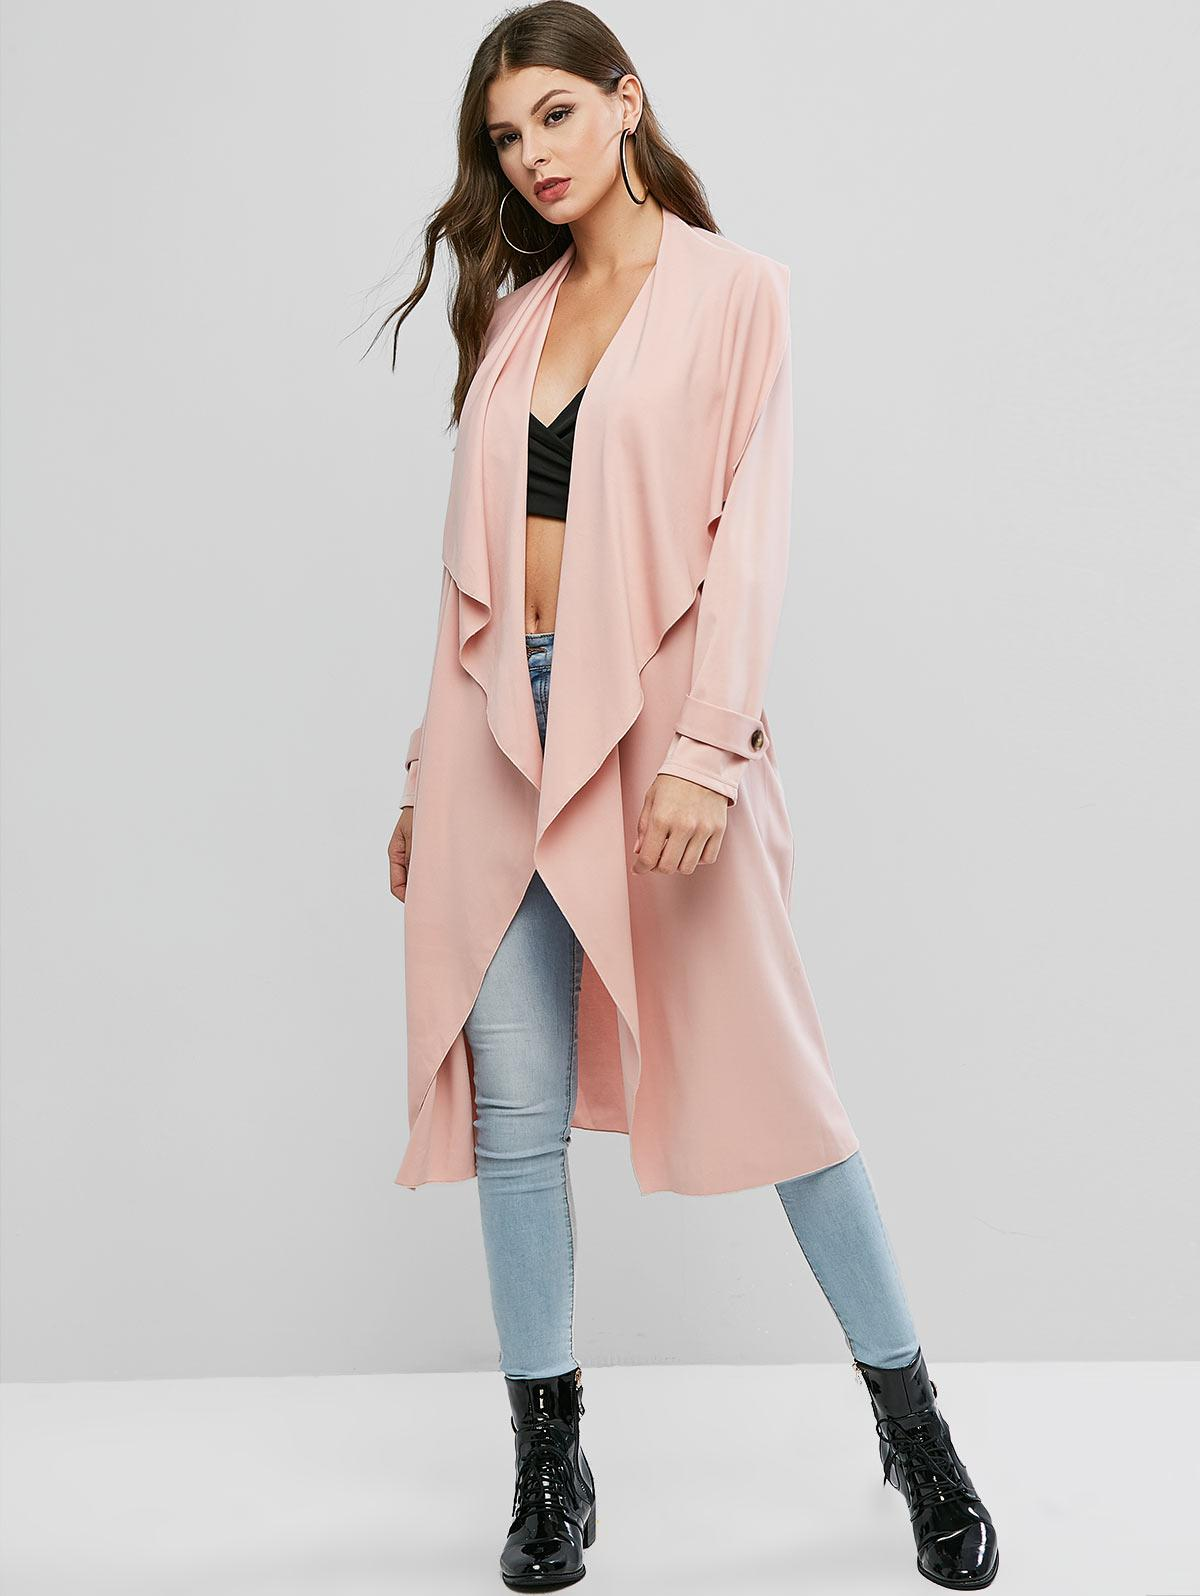 ZAFUL Solid Color Buttons Open Coat фото